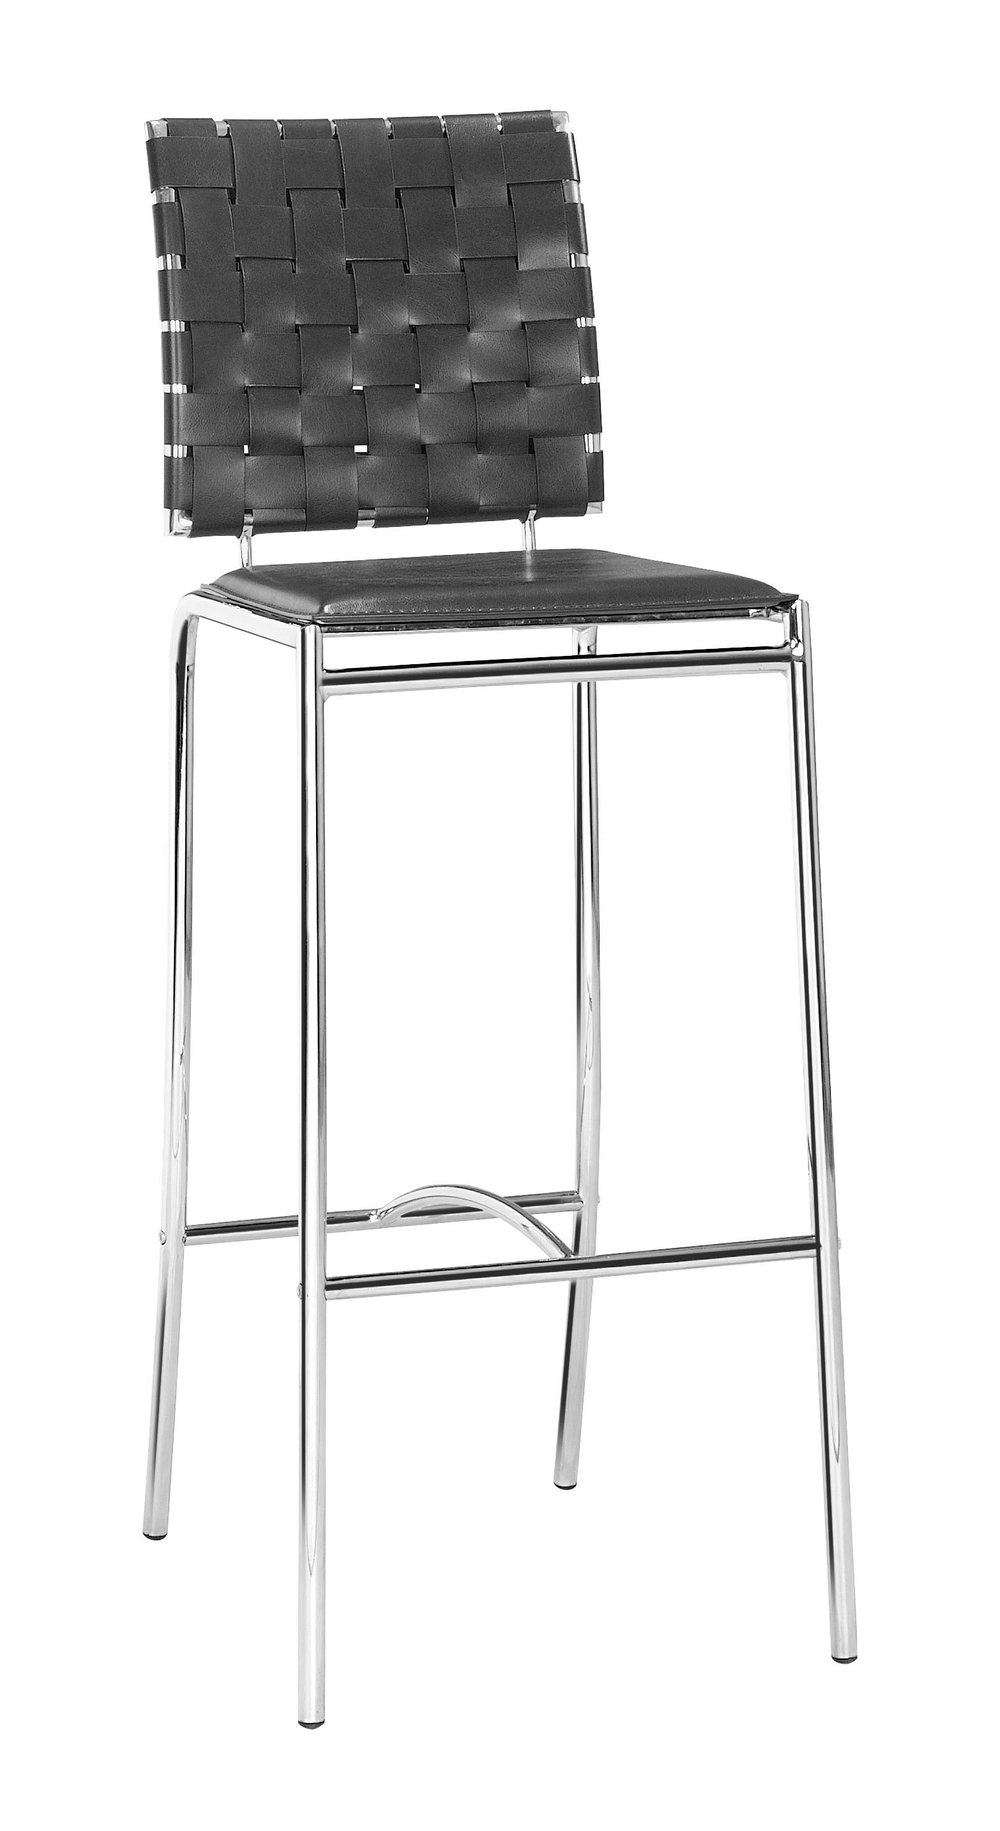 ZUO MODERN CONTEMPORARY, INC - Criss Cross Bar Chair - Set of 2 - Black